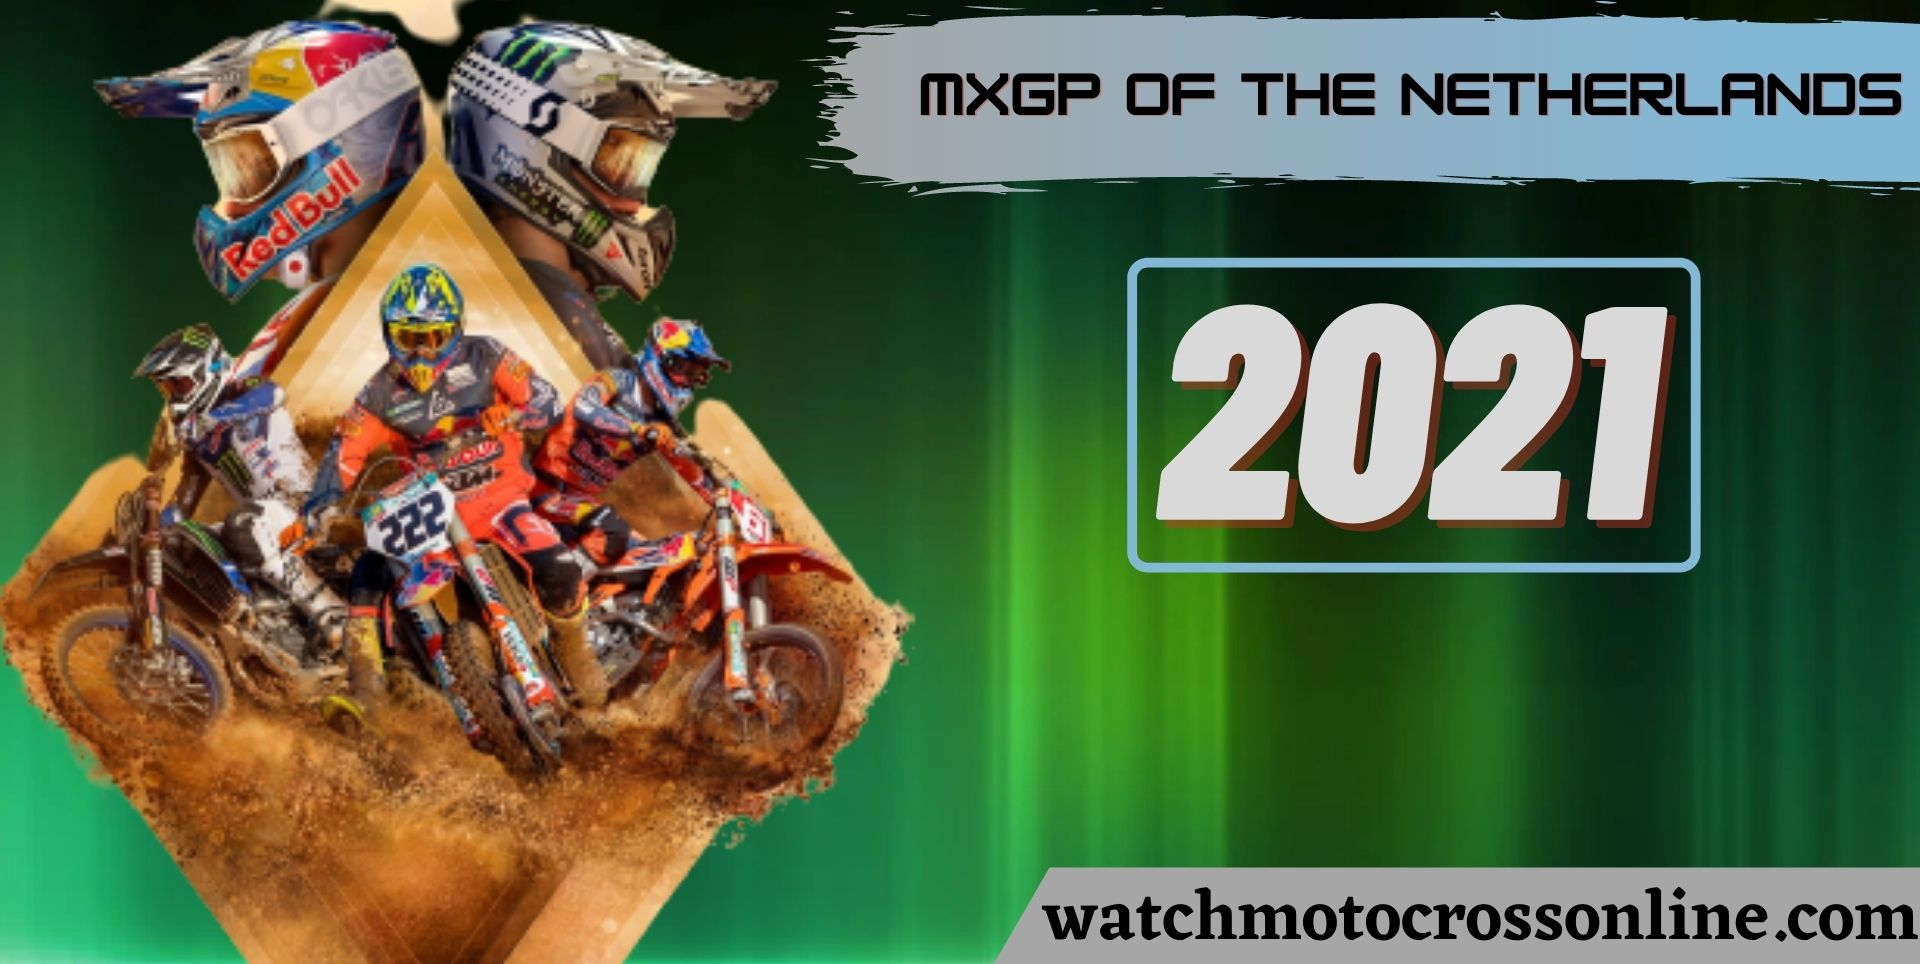 MXGP Of The Netherlands Live Stream 2021